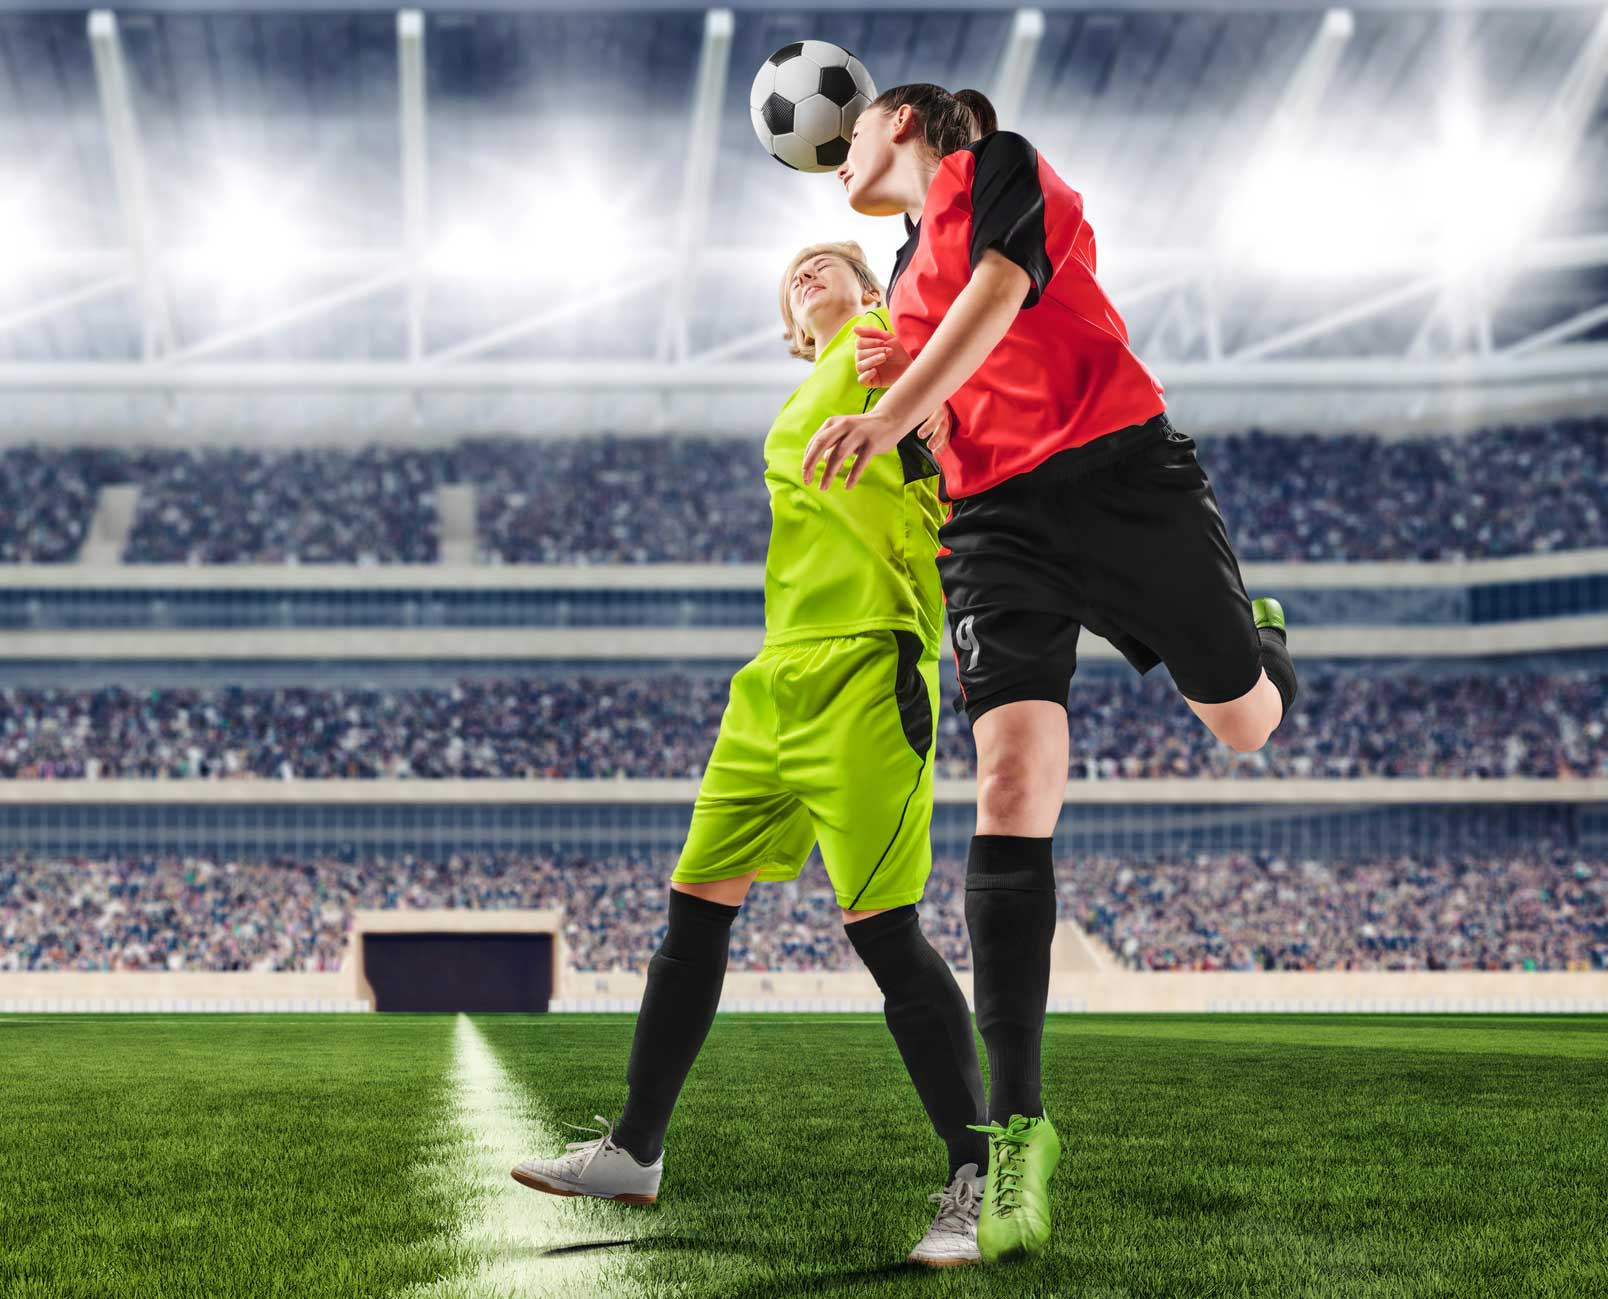 Soccer Headball: Who's More Likely to Suffer A Concussion, Male or Female?